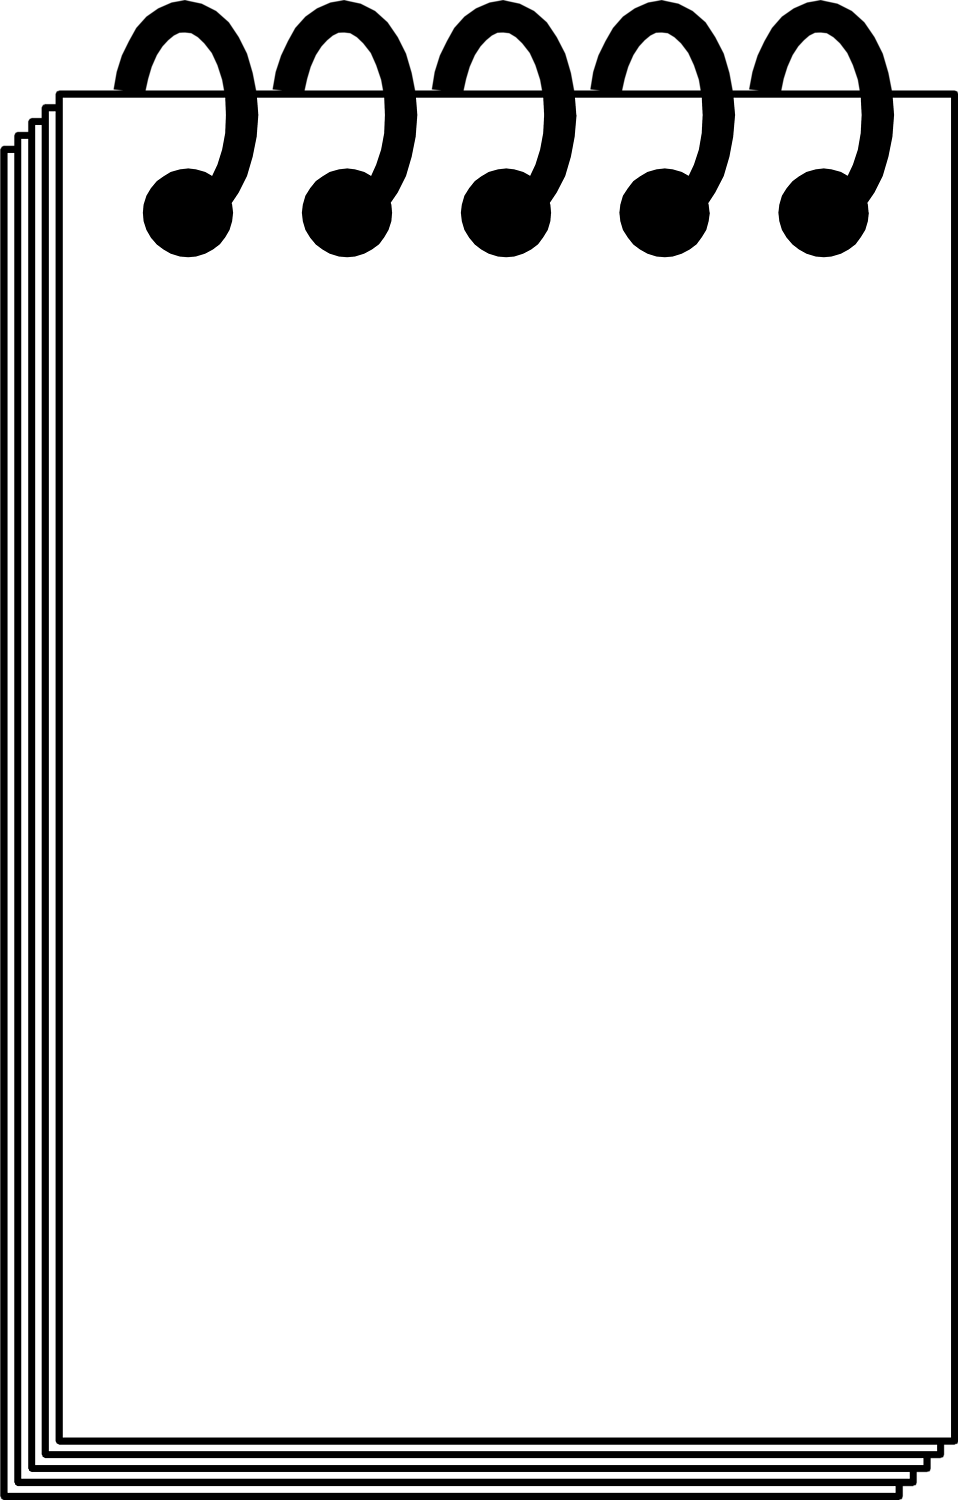 Writing Pad Clipart Png.